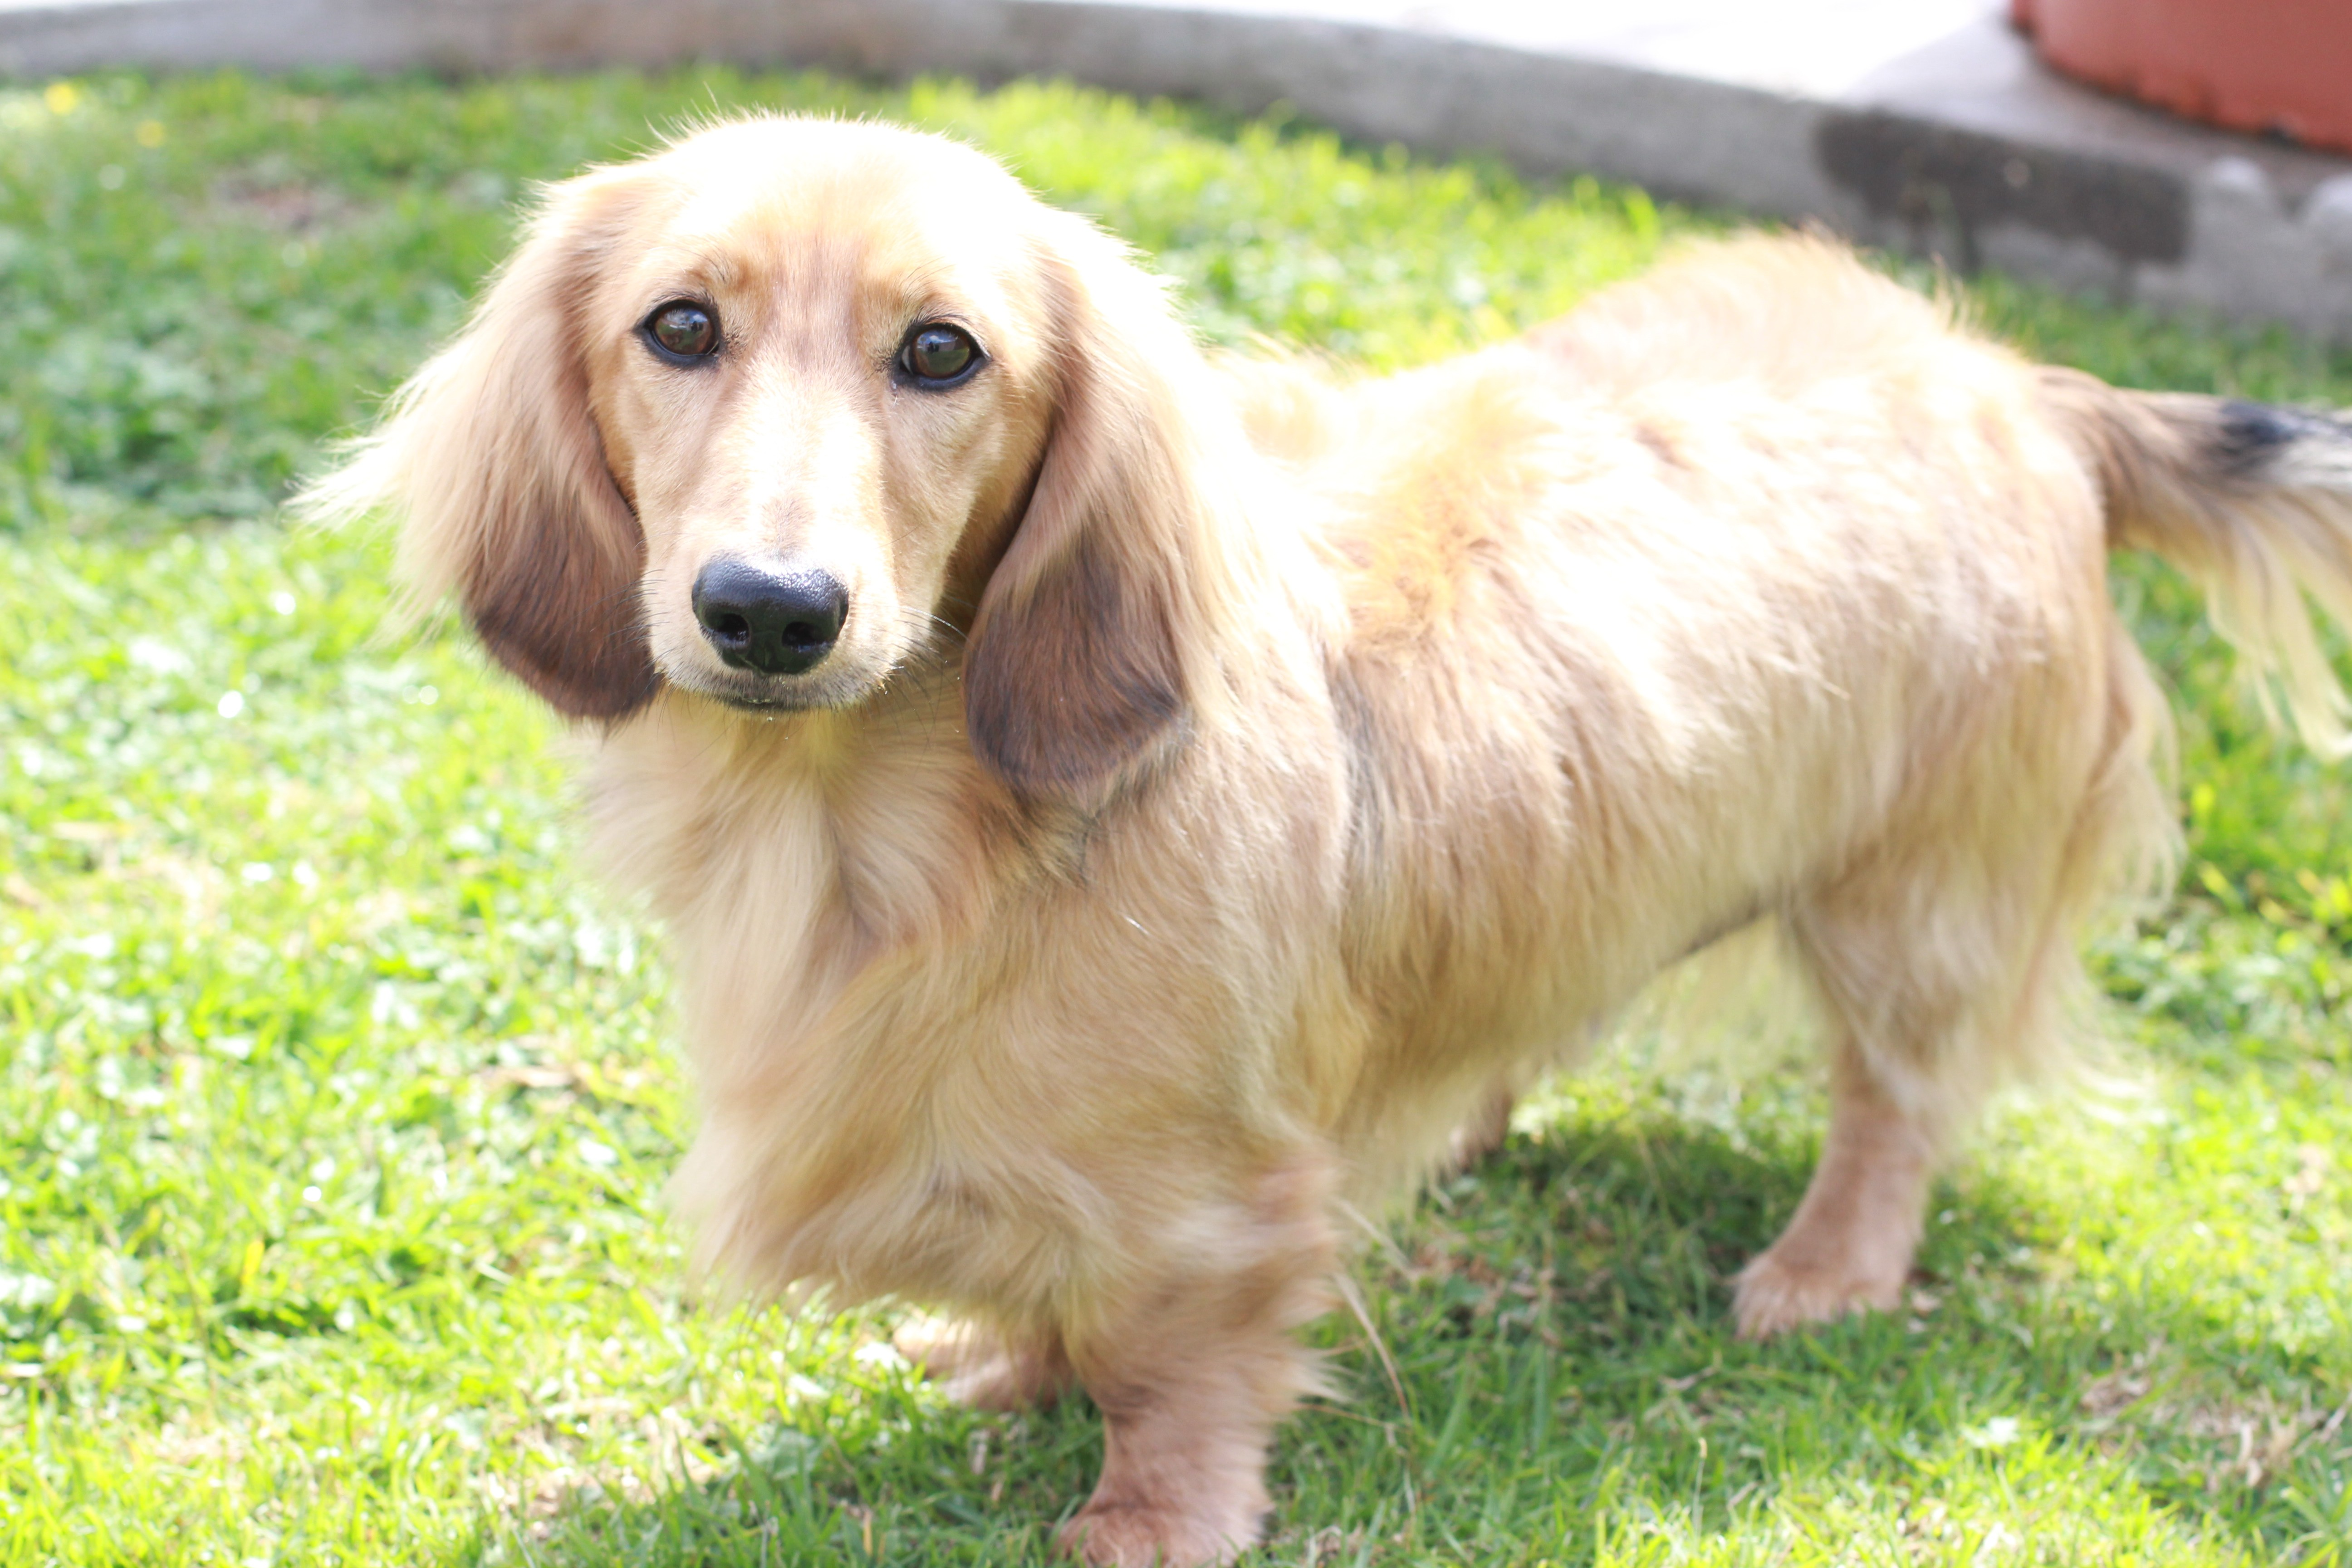 About English Cream Dachshunds | Crown Dachshunds